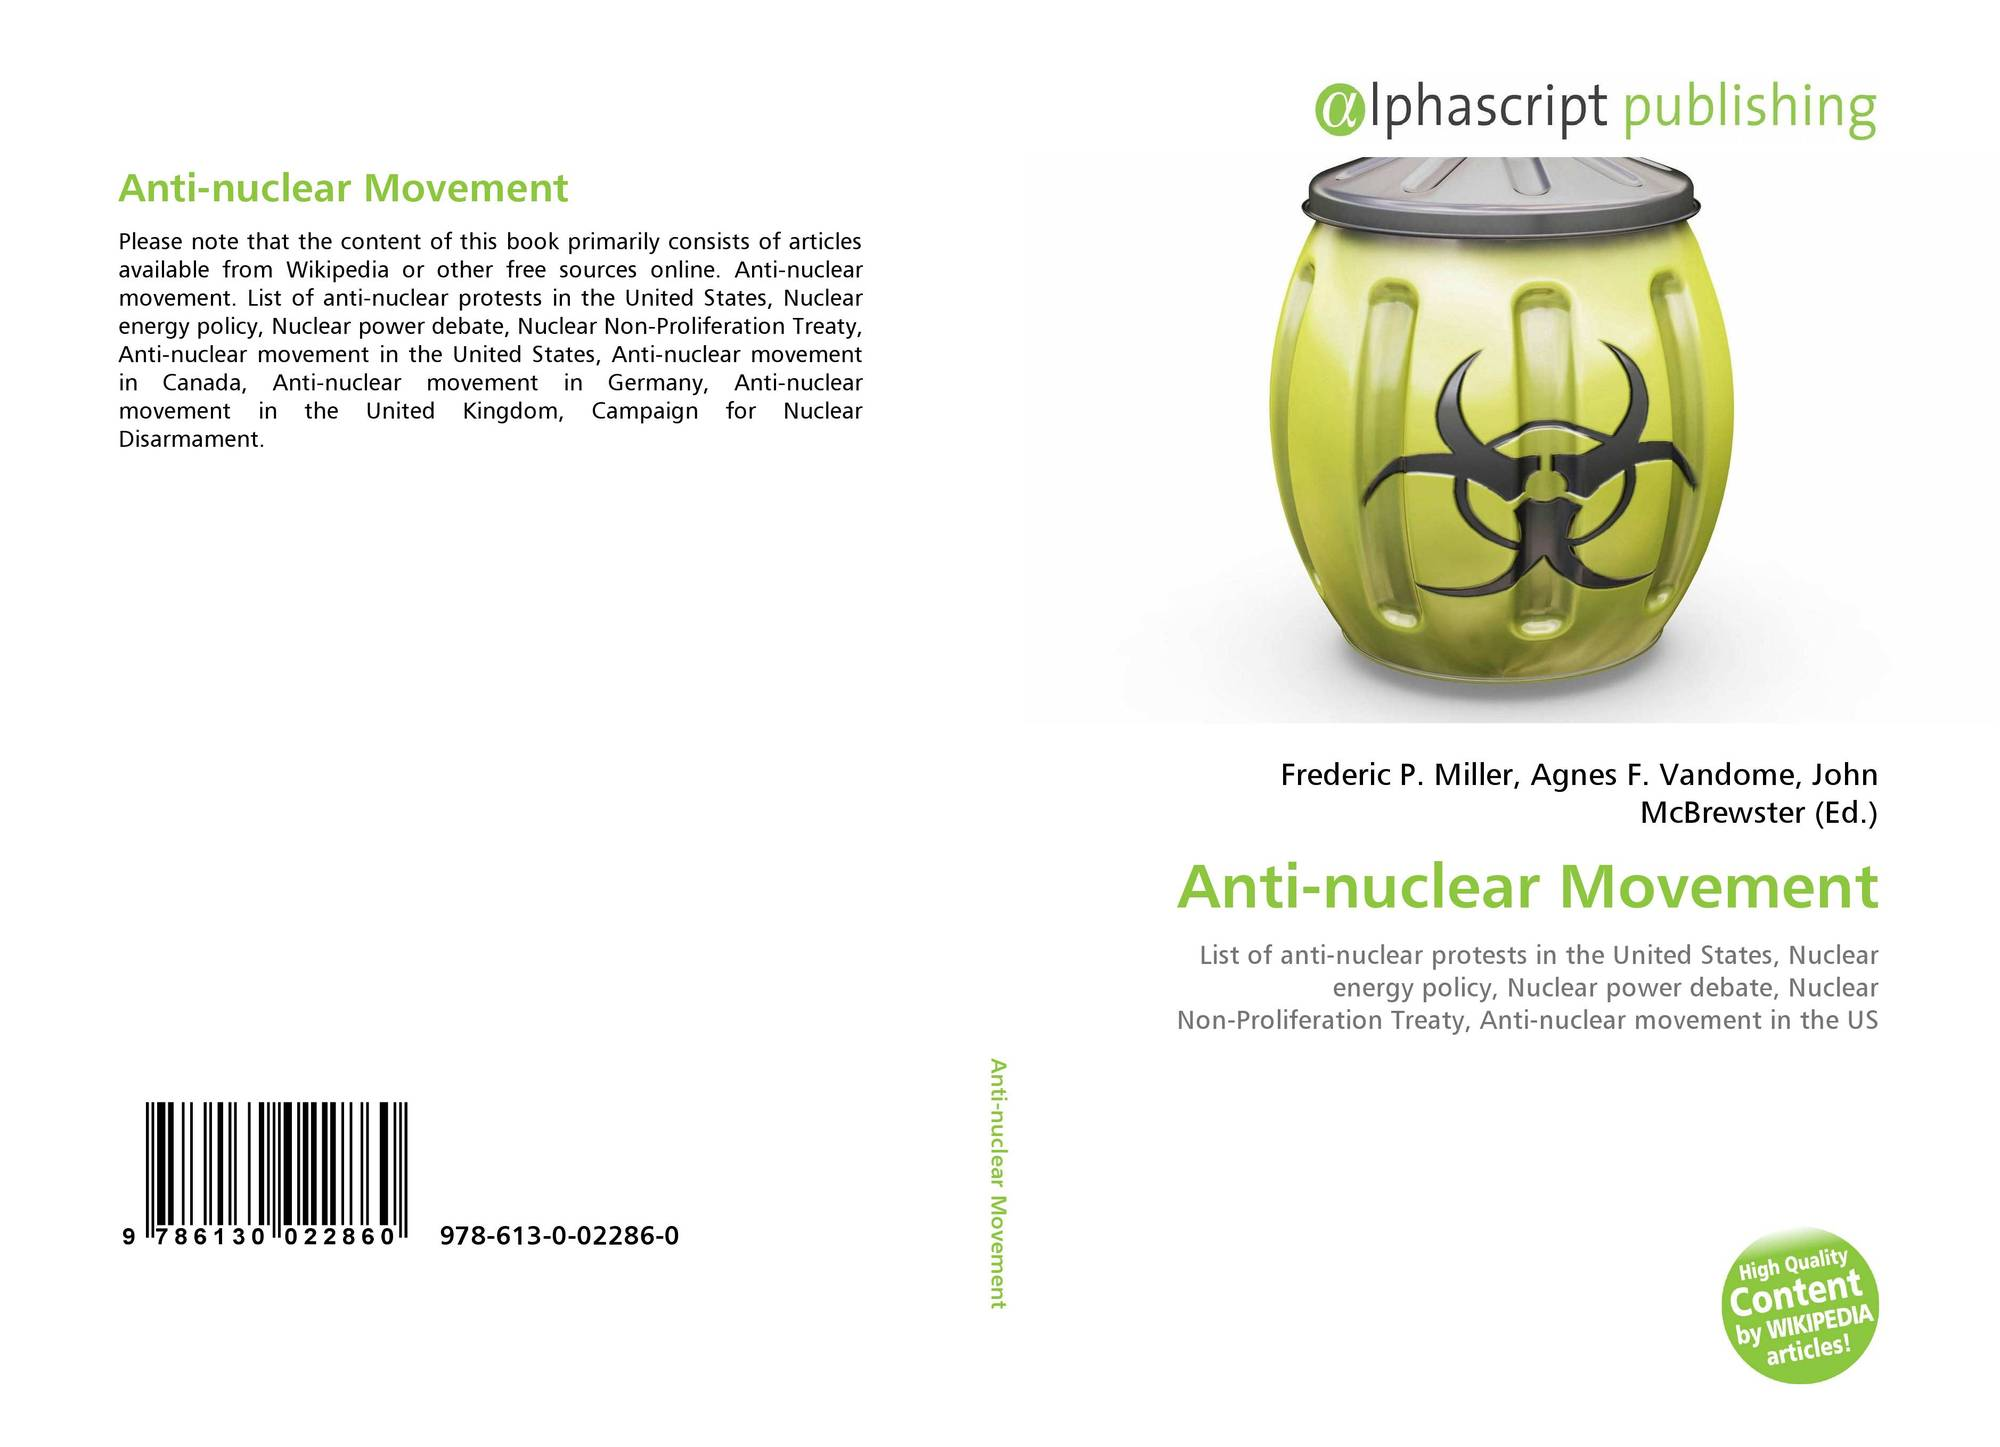 anti nuclear movements essay Anti-nuclear movements essay by mabl, high school, 11th grade, october 2007 download word file anti nuclear power movement's smiling sun.